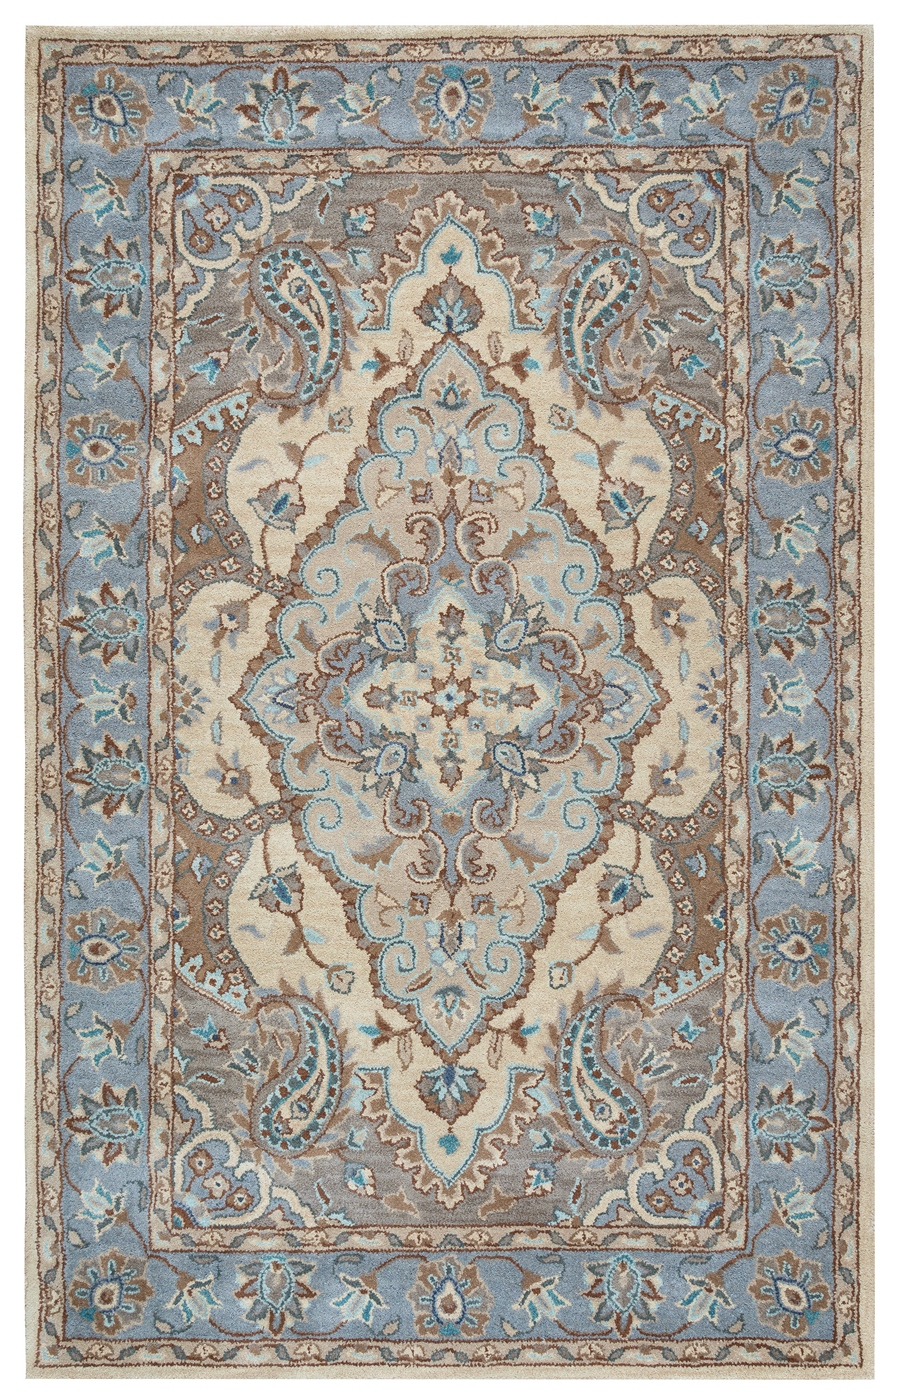 Valintino Floral Paisley Pattern Wool Runner Rug In Blue